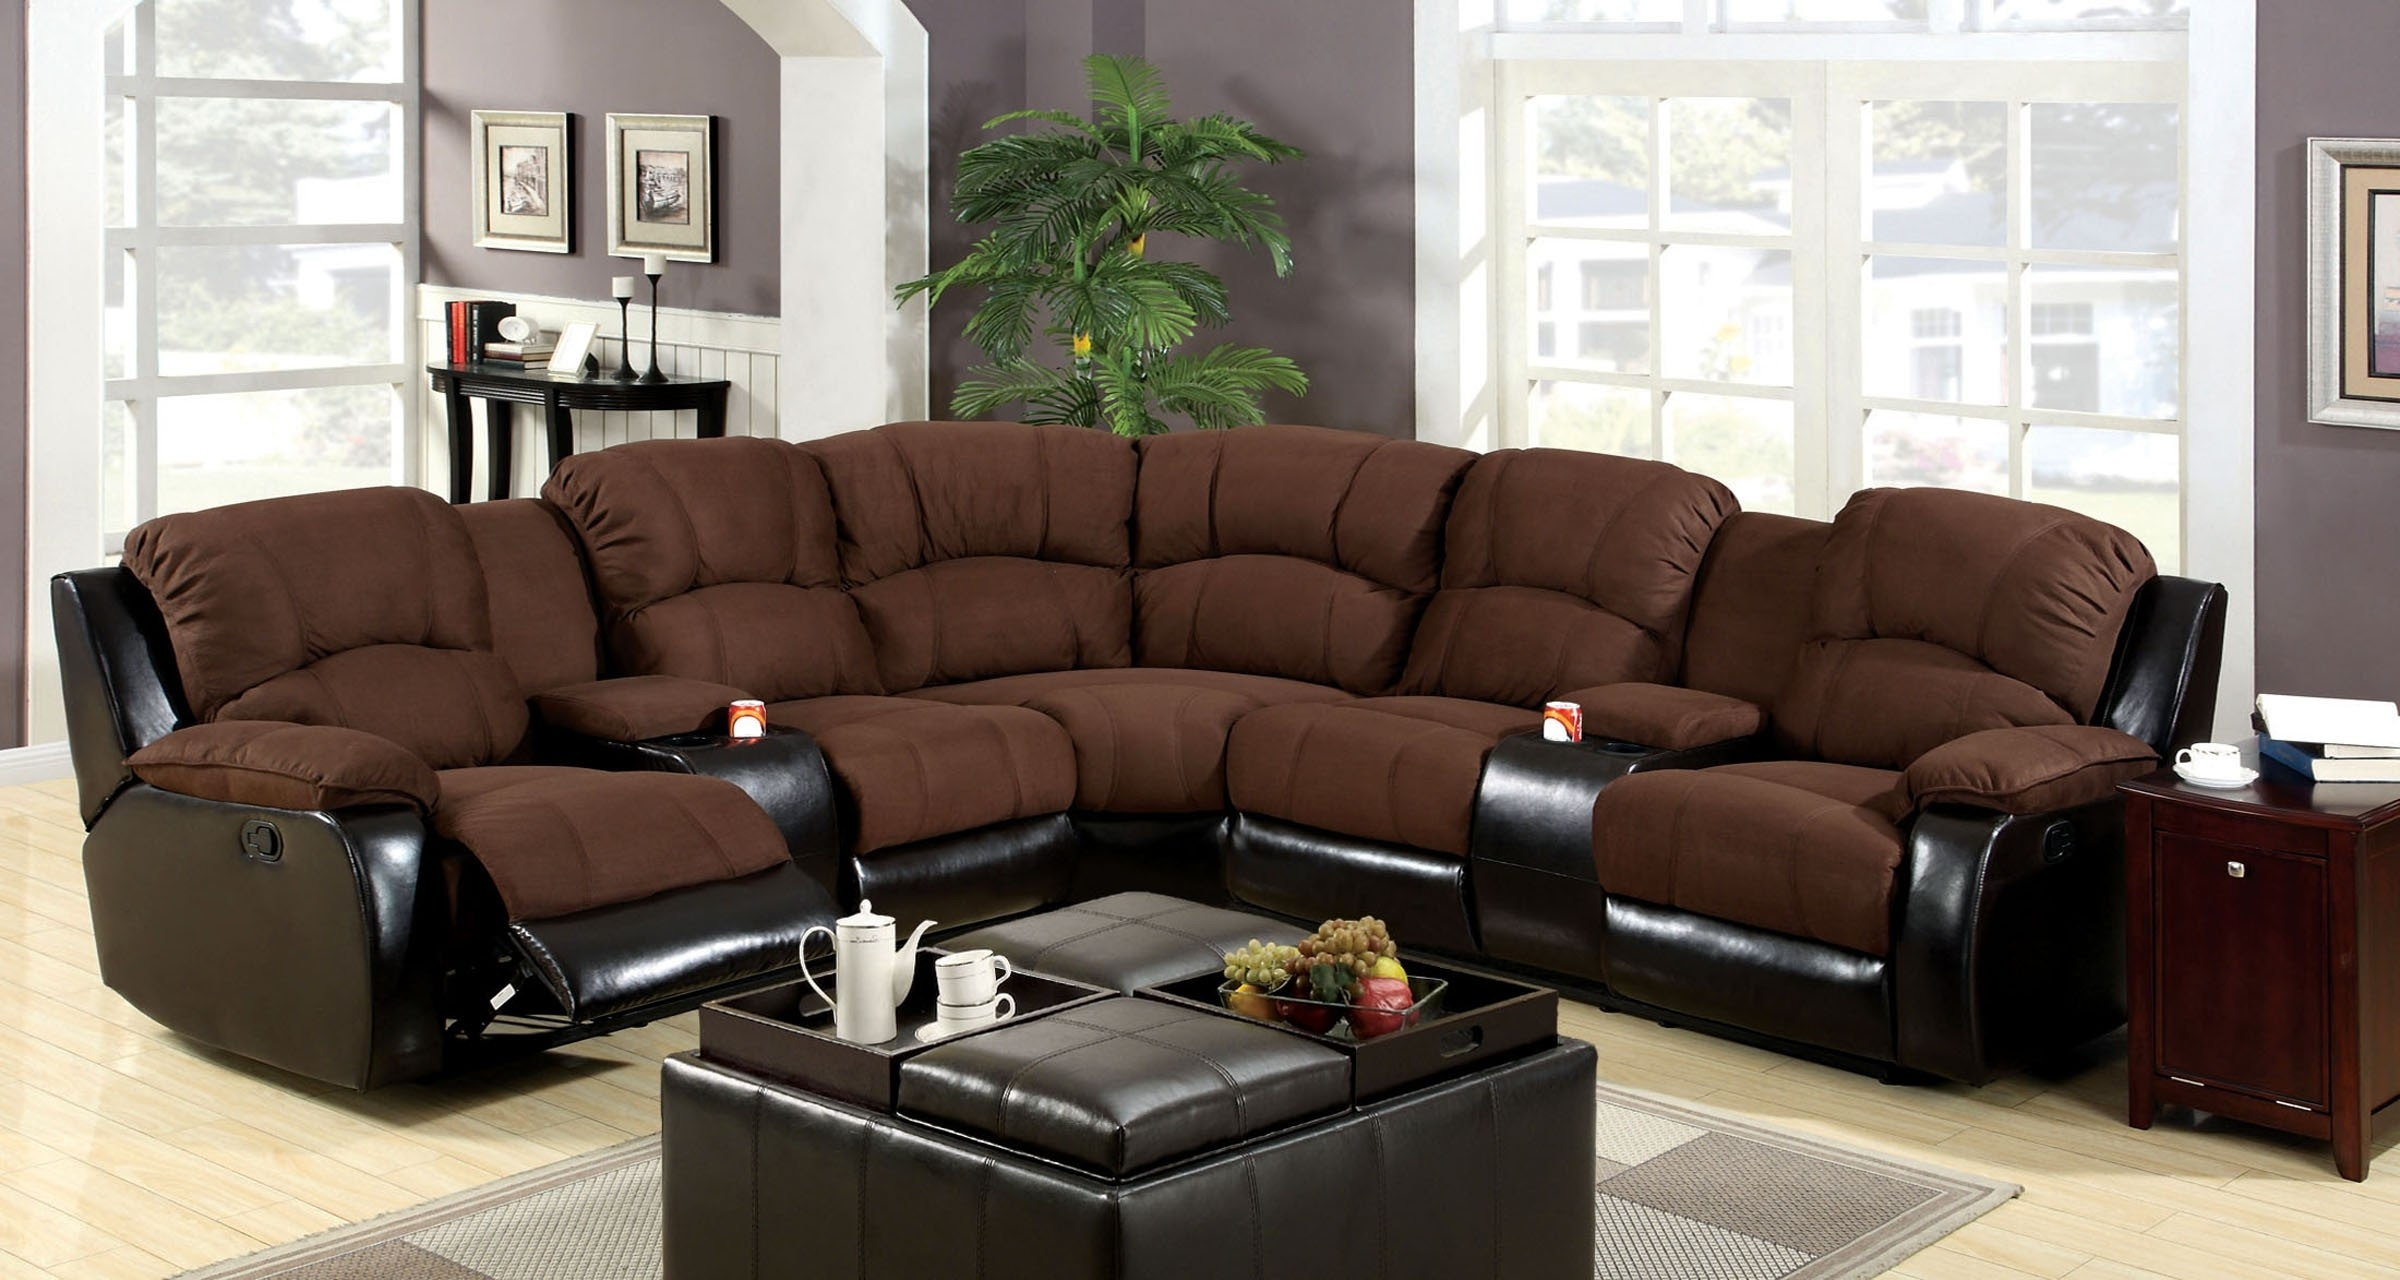 Most Recently Released Couch With Cup Holders In Arms Reclining Sectional Sofas For Small Regarding Sectional Sofas With Cup Holders (View 1 of 15)